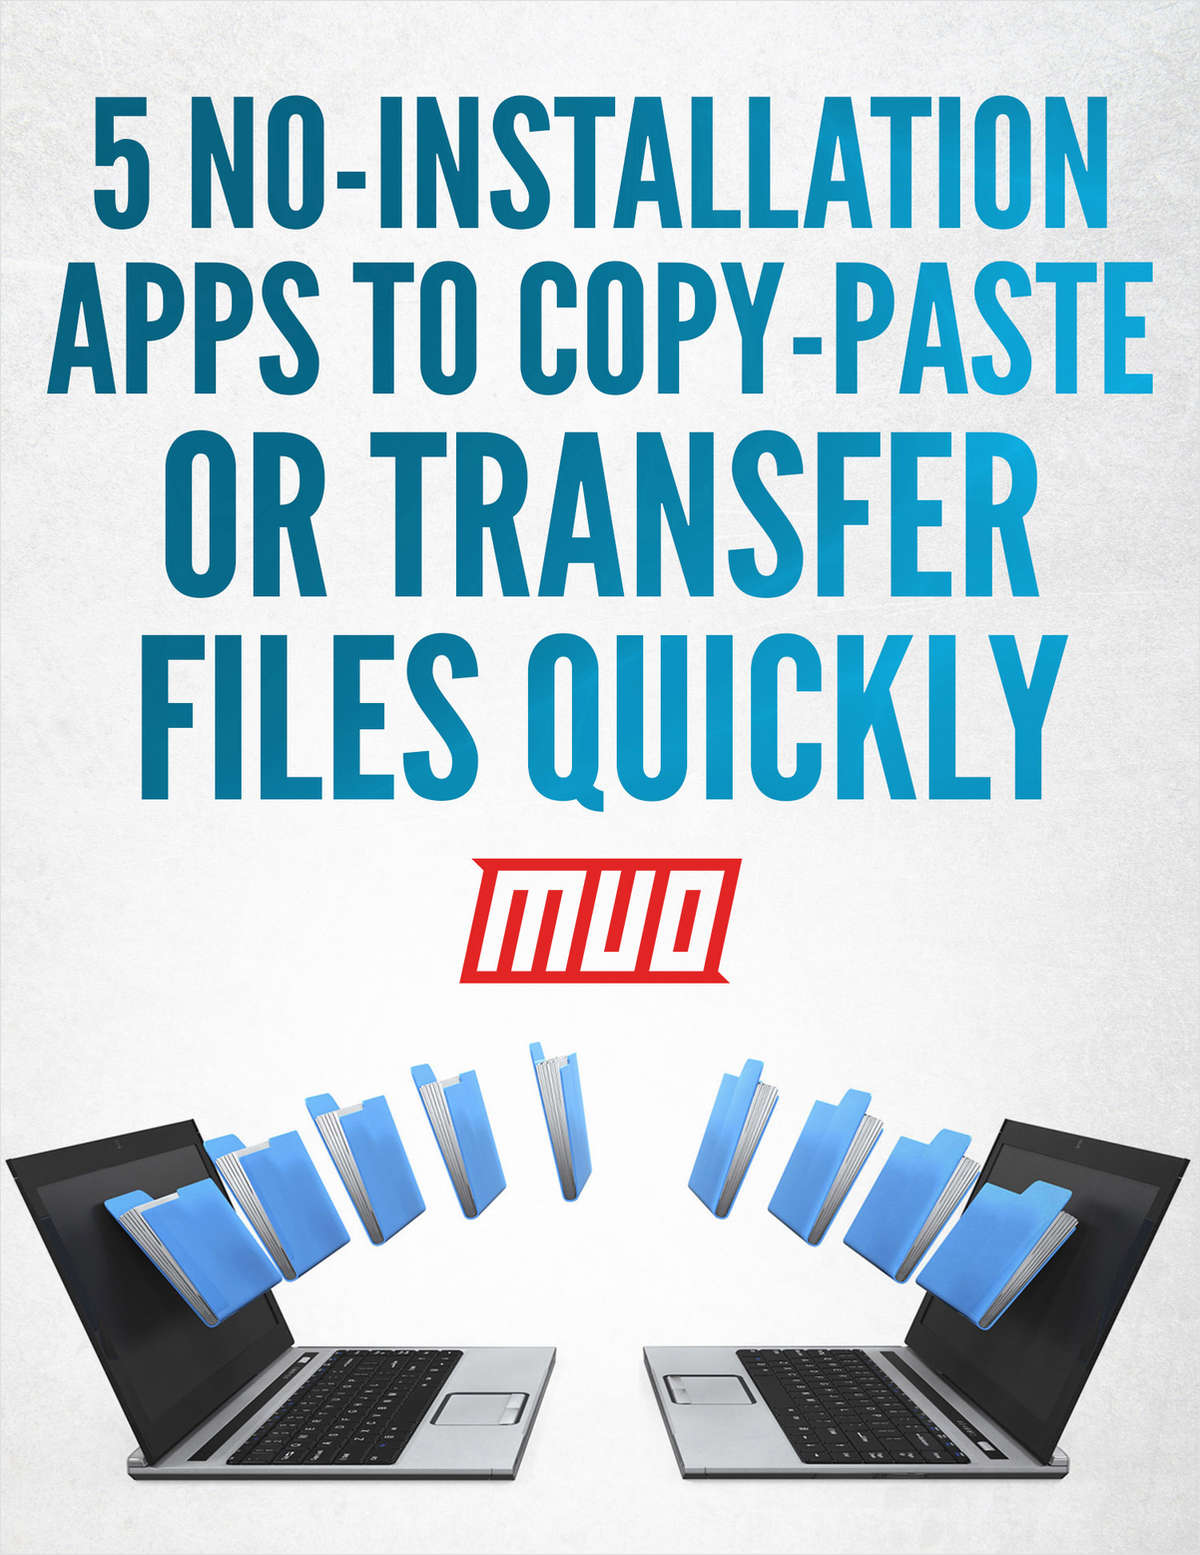 5 No-Installation Apps to Copy-Paste or Transfer Files Quickly